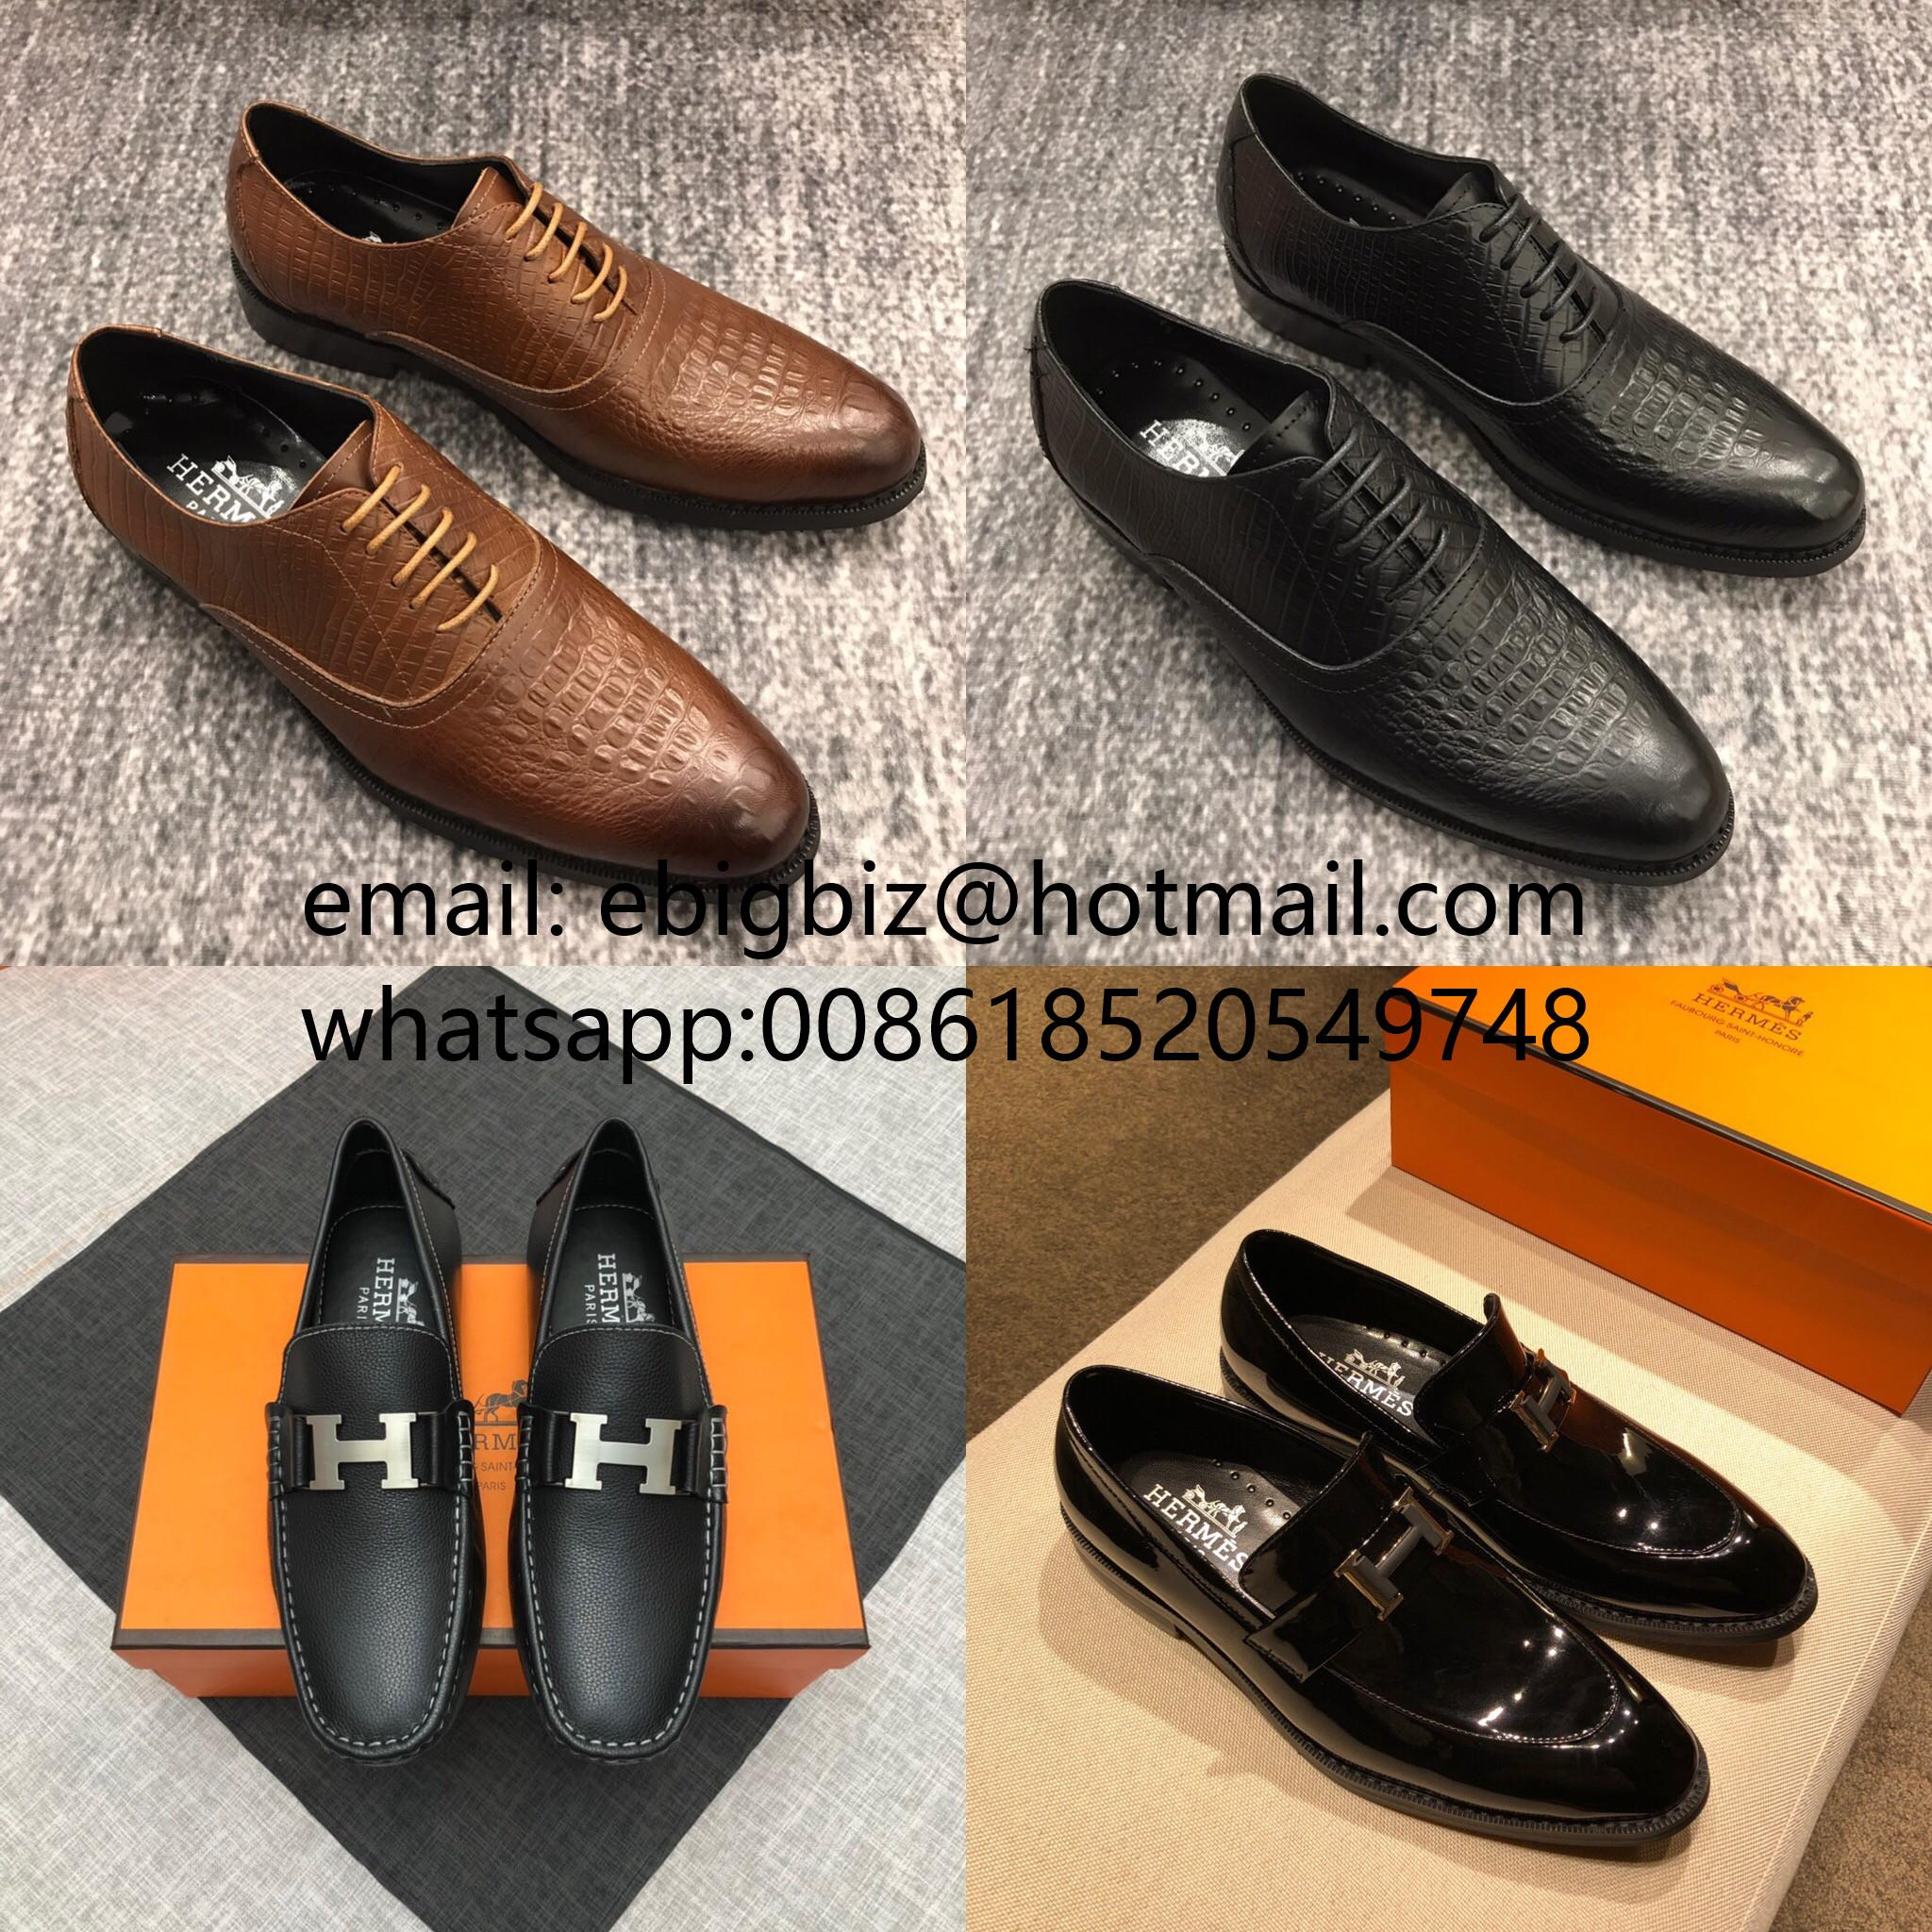 Hermes loafers men Hermes shoes men Hermes Driving shoes hermes shoes women